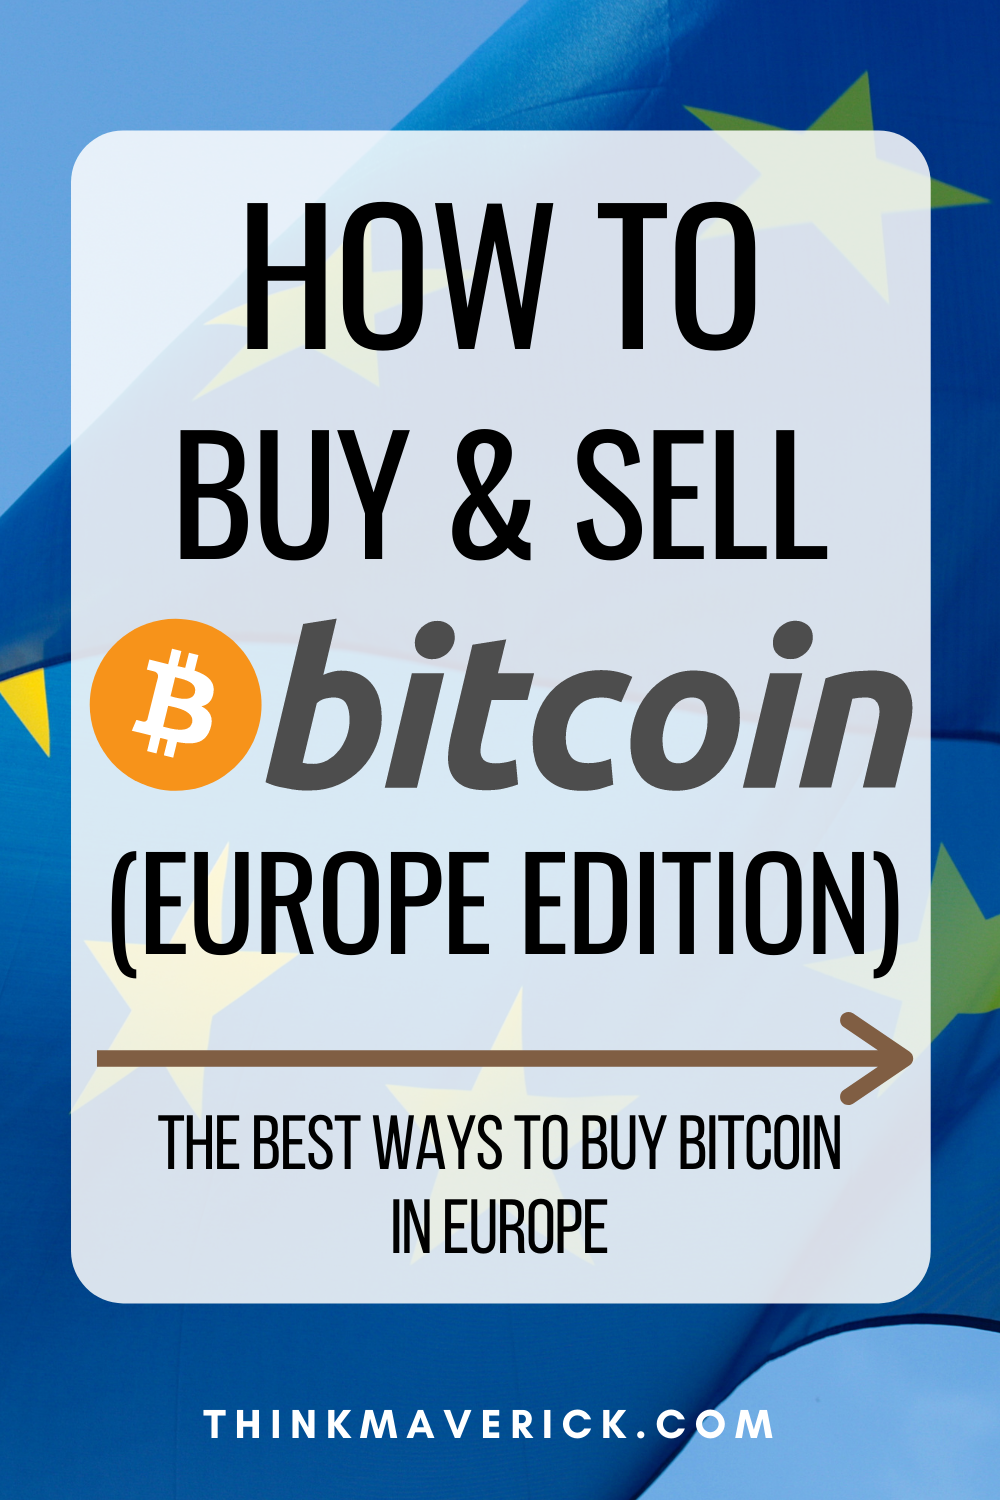 10 Best Ways To Buy Bitcoin In Europe Thinkmaverick My Personal Journey Through Entrepreneurship